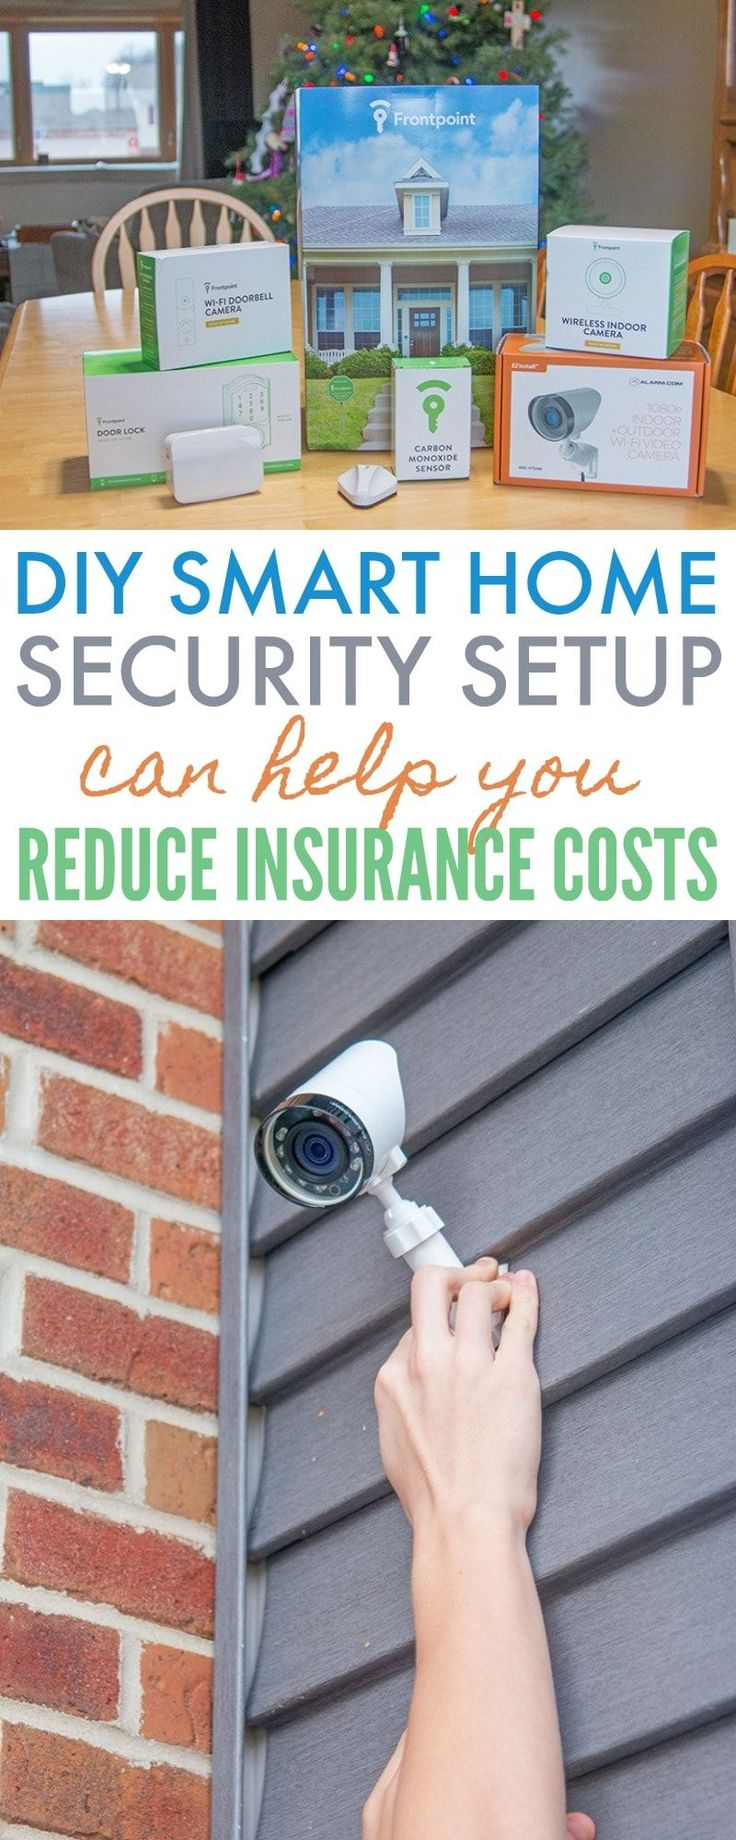 Frontpoint Security Setup - Protect Your Home with American Family Insurance and a smart home security system. Peace of mind and discounts on insurance! DIY setup. #smarthome #homesecurity #technology #dreamfearlessly